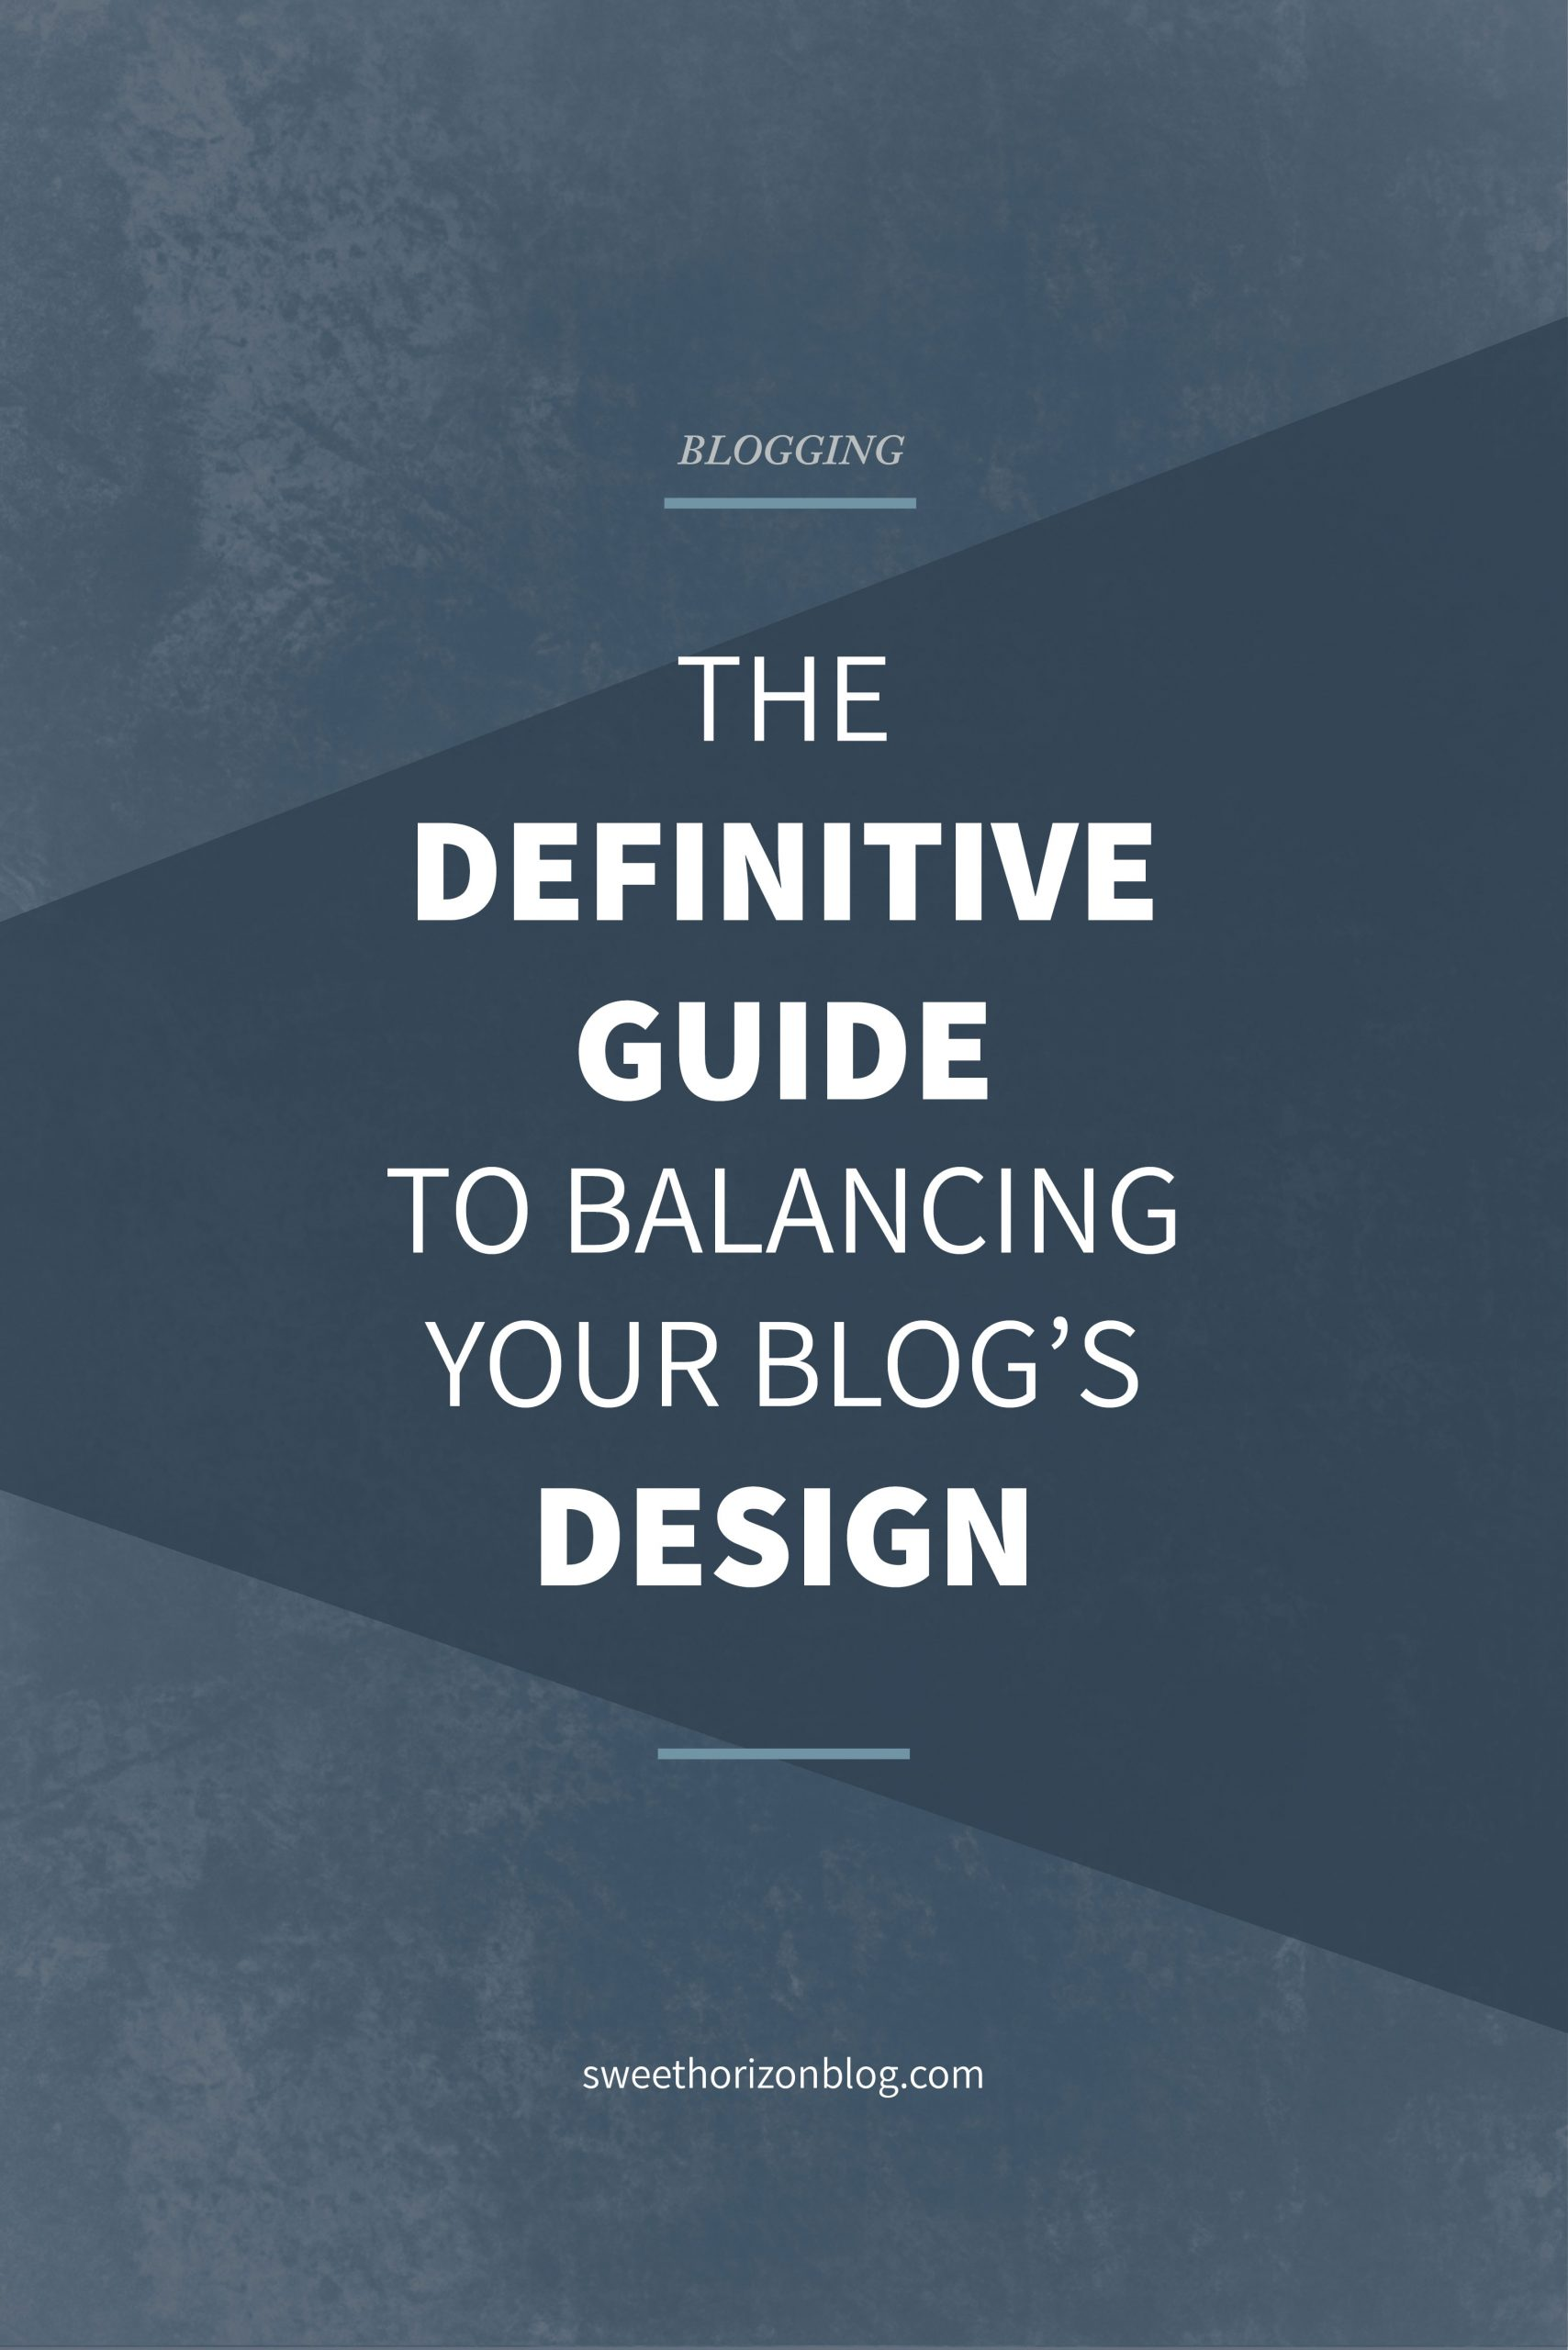 The Definitive Guide to Balancing Your Blog's Design from www.sweethorizonblog.com